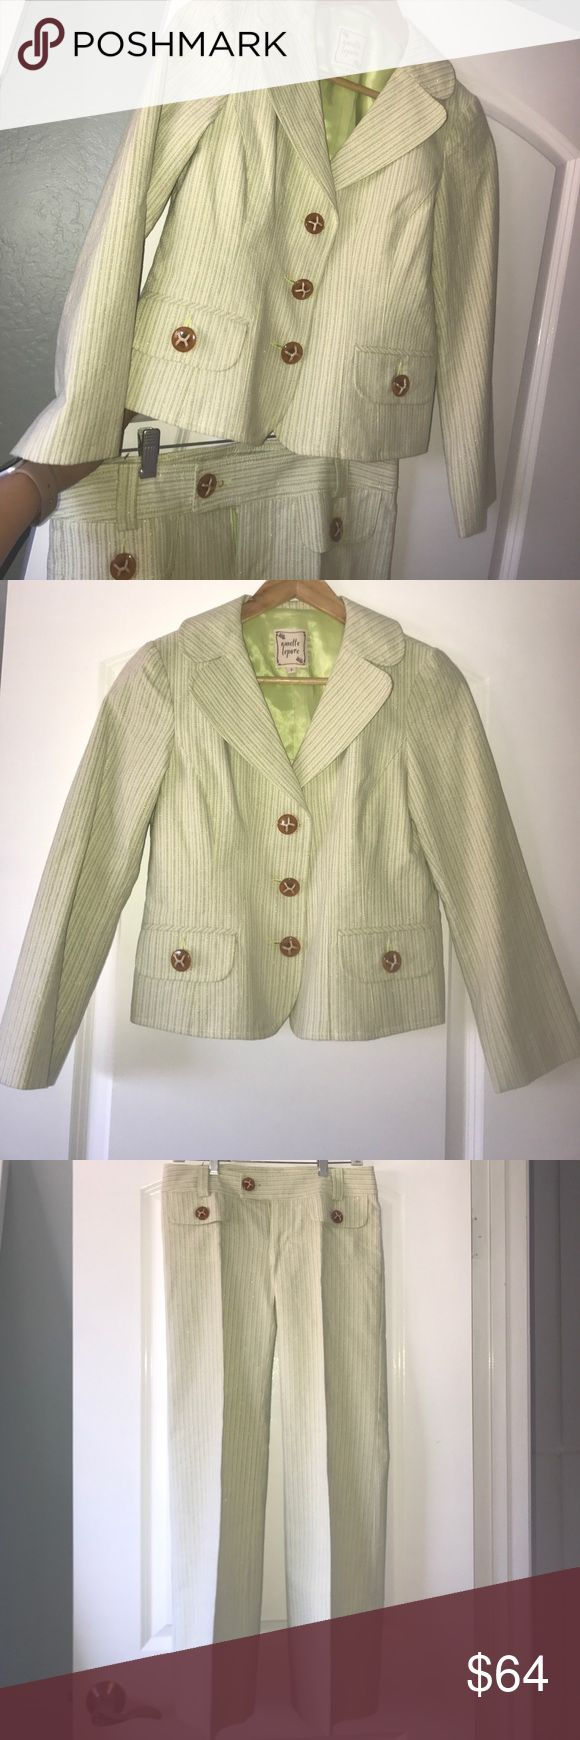 Nanette Lepore summer suit Light Lime Green summer suit, jacket and pants, 97% cotton. Dry clean only. This suit looks better in real life, it is in good condition, and it is very flattering. Size 2 petite Nanette Lepore Pants Straight Leg